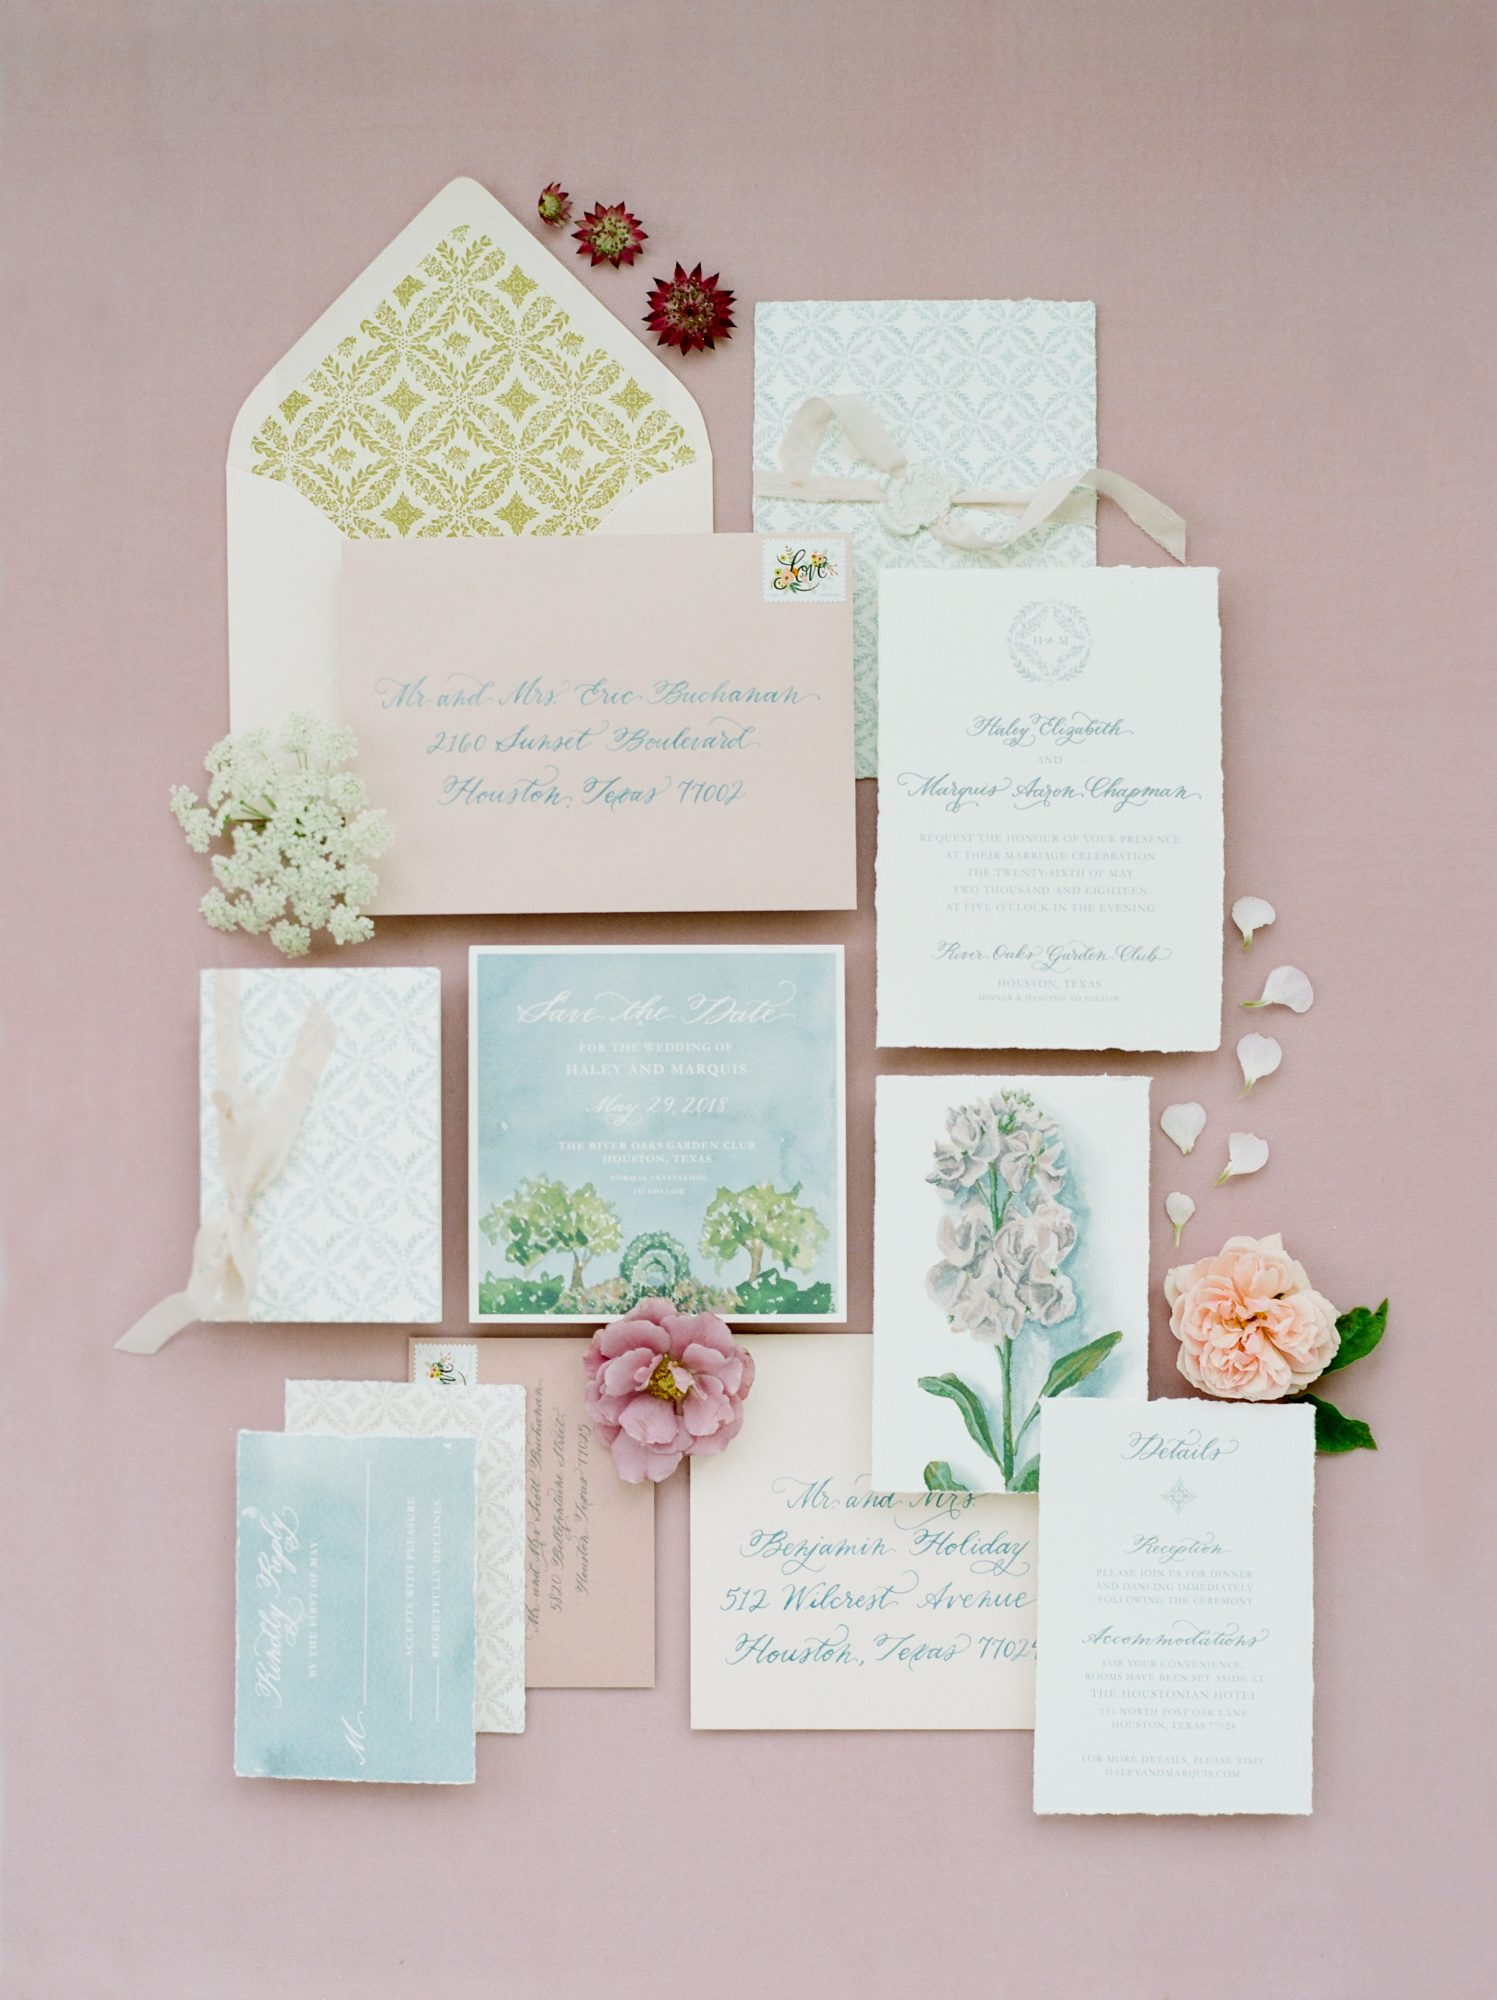 stationery with floral itinerary card